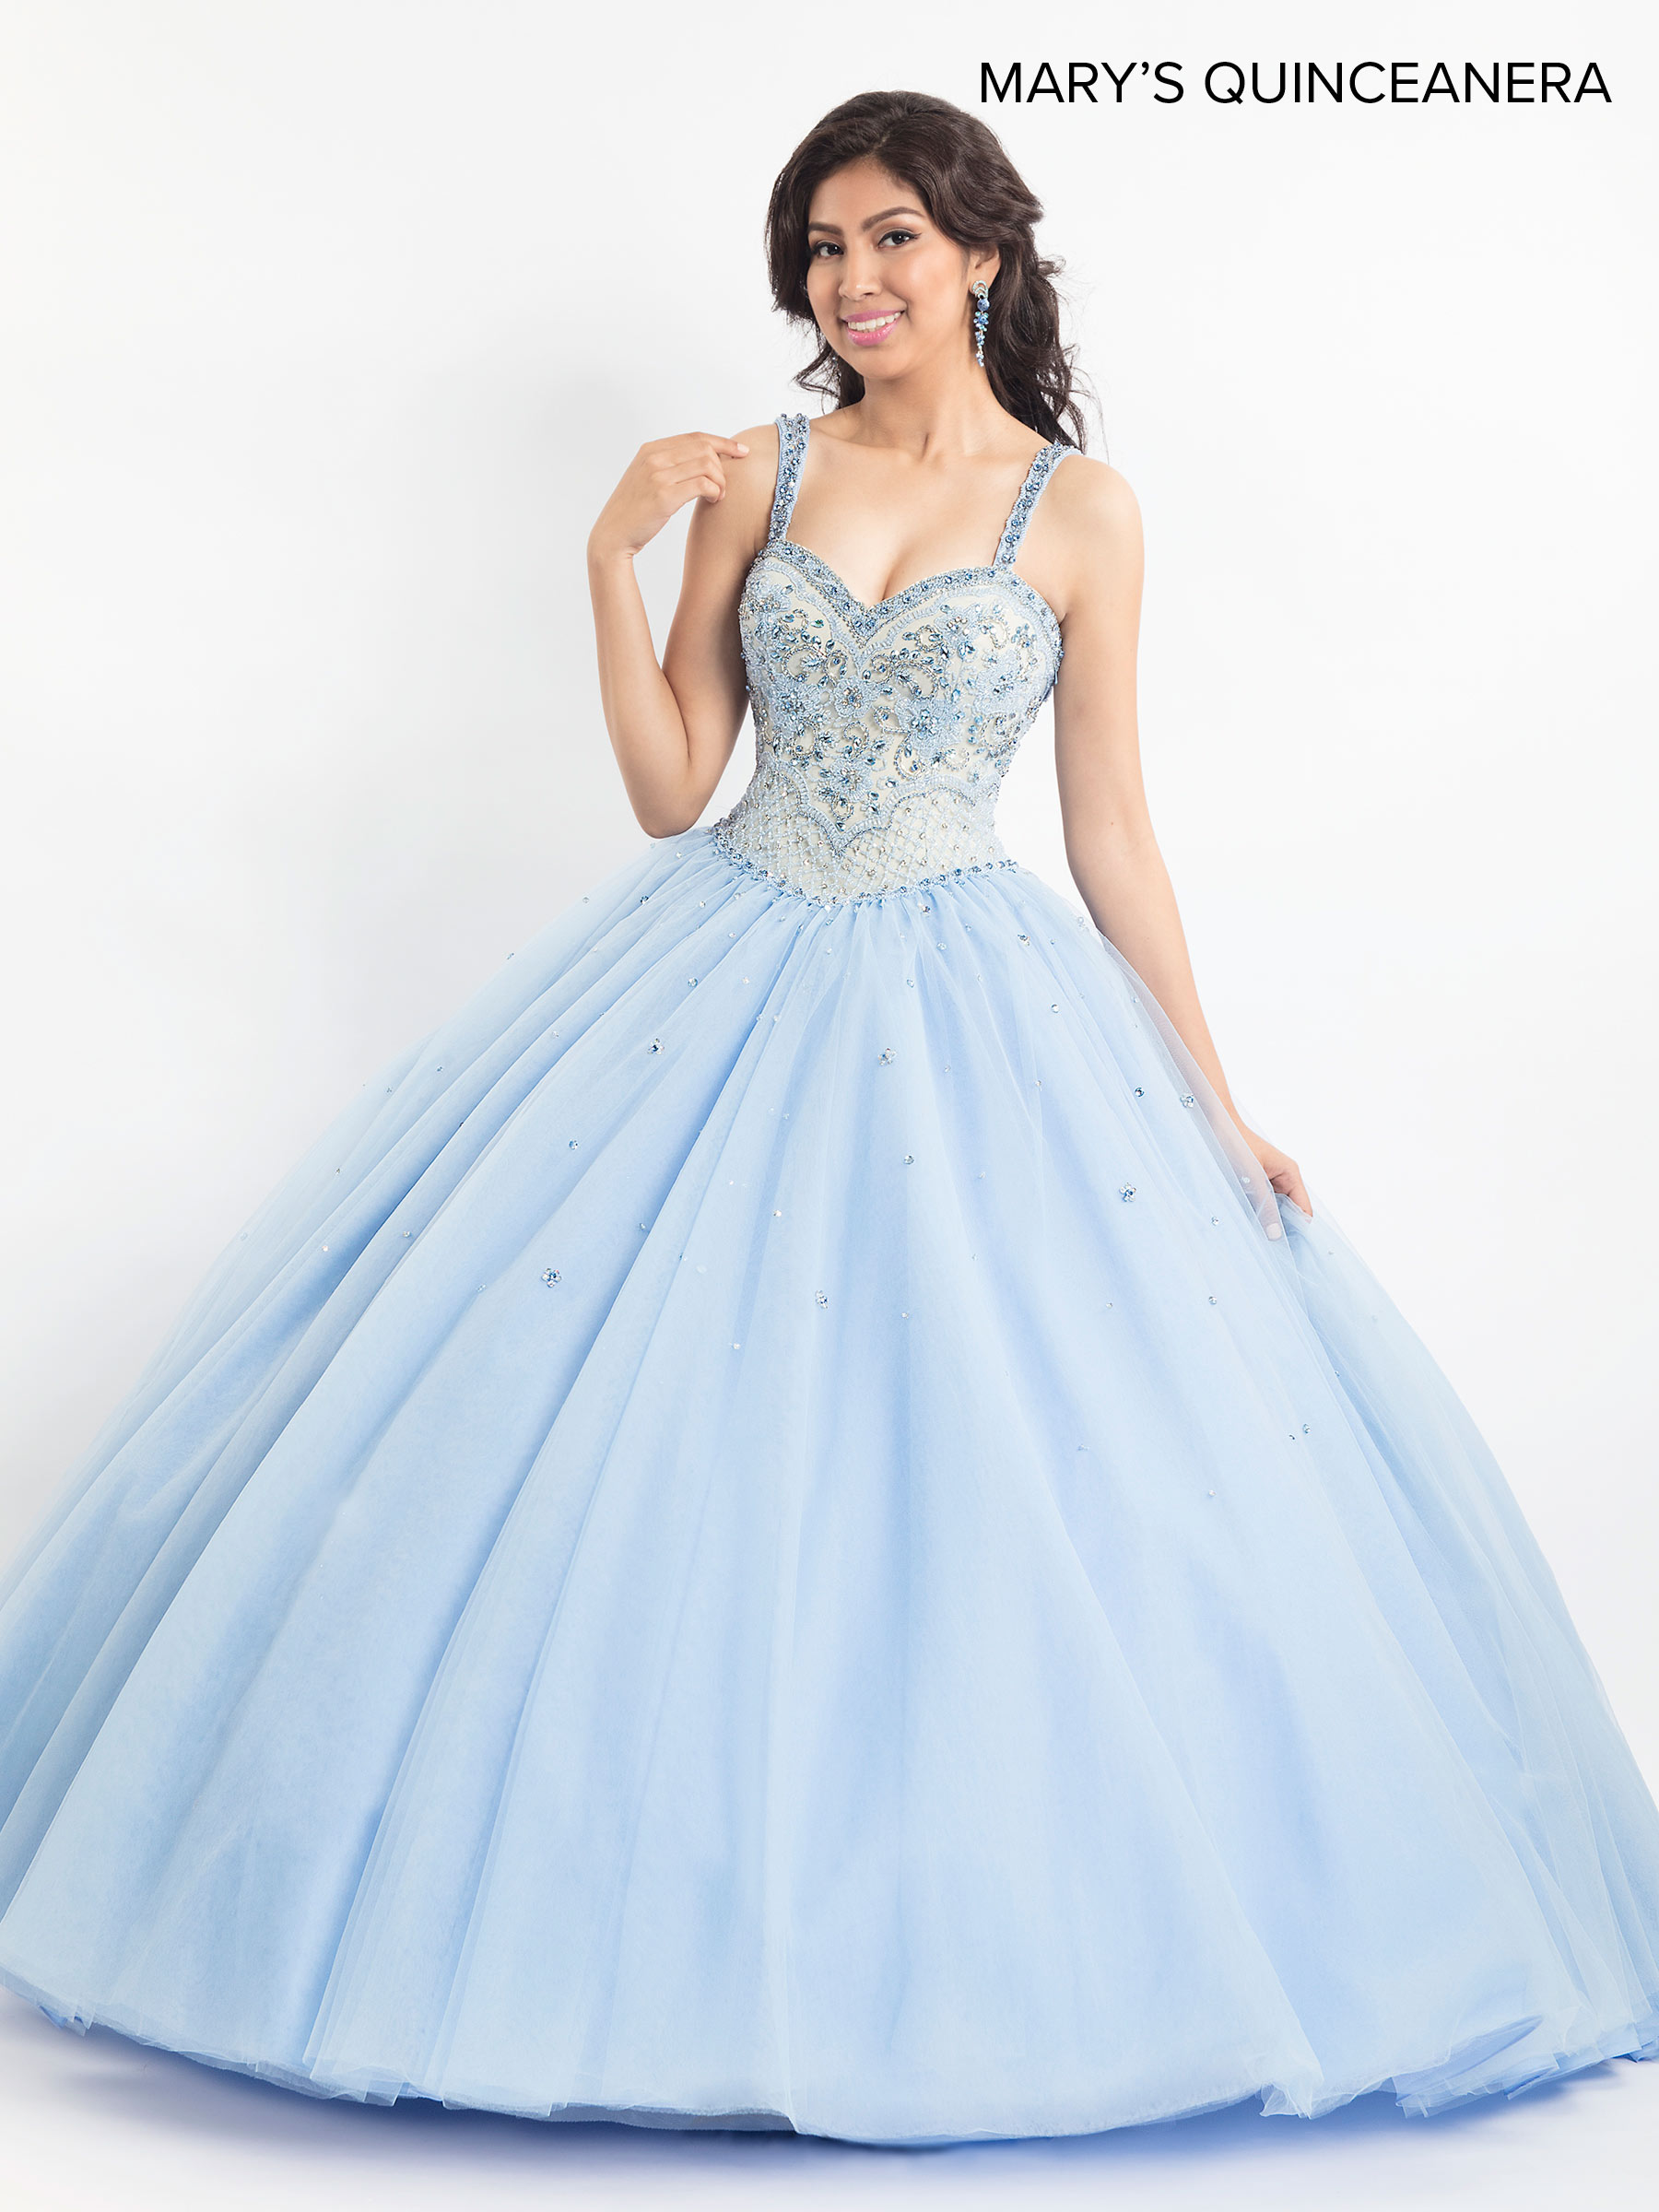 Marys Quinceanera Dresses | Mary's Quinceanera | Style - MQ2020